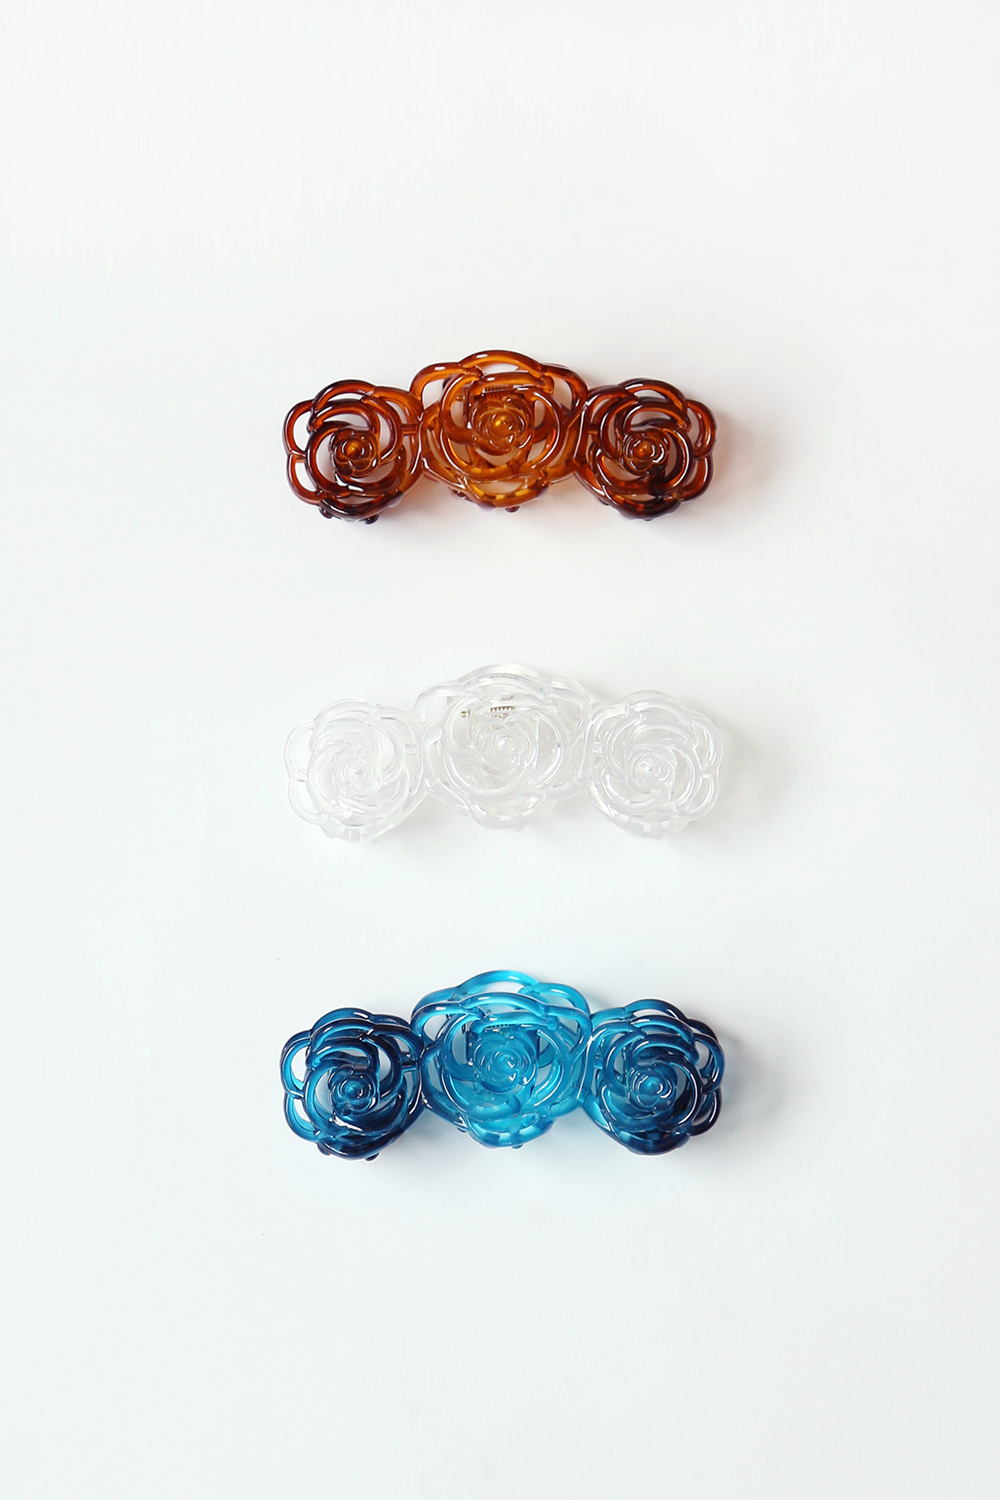 ROSE HAIR CLIP PIN (brown, clear, blue)